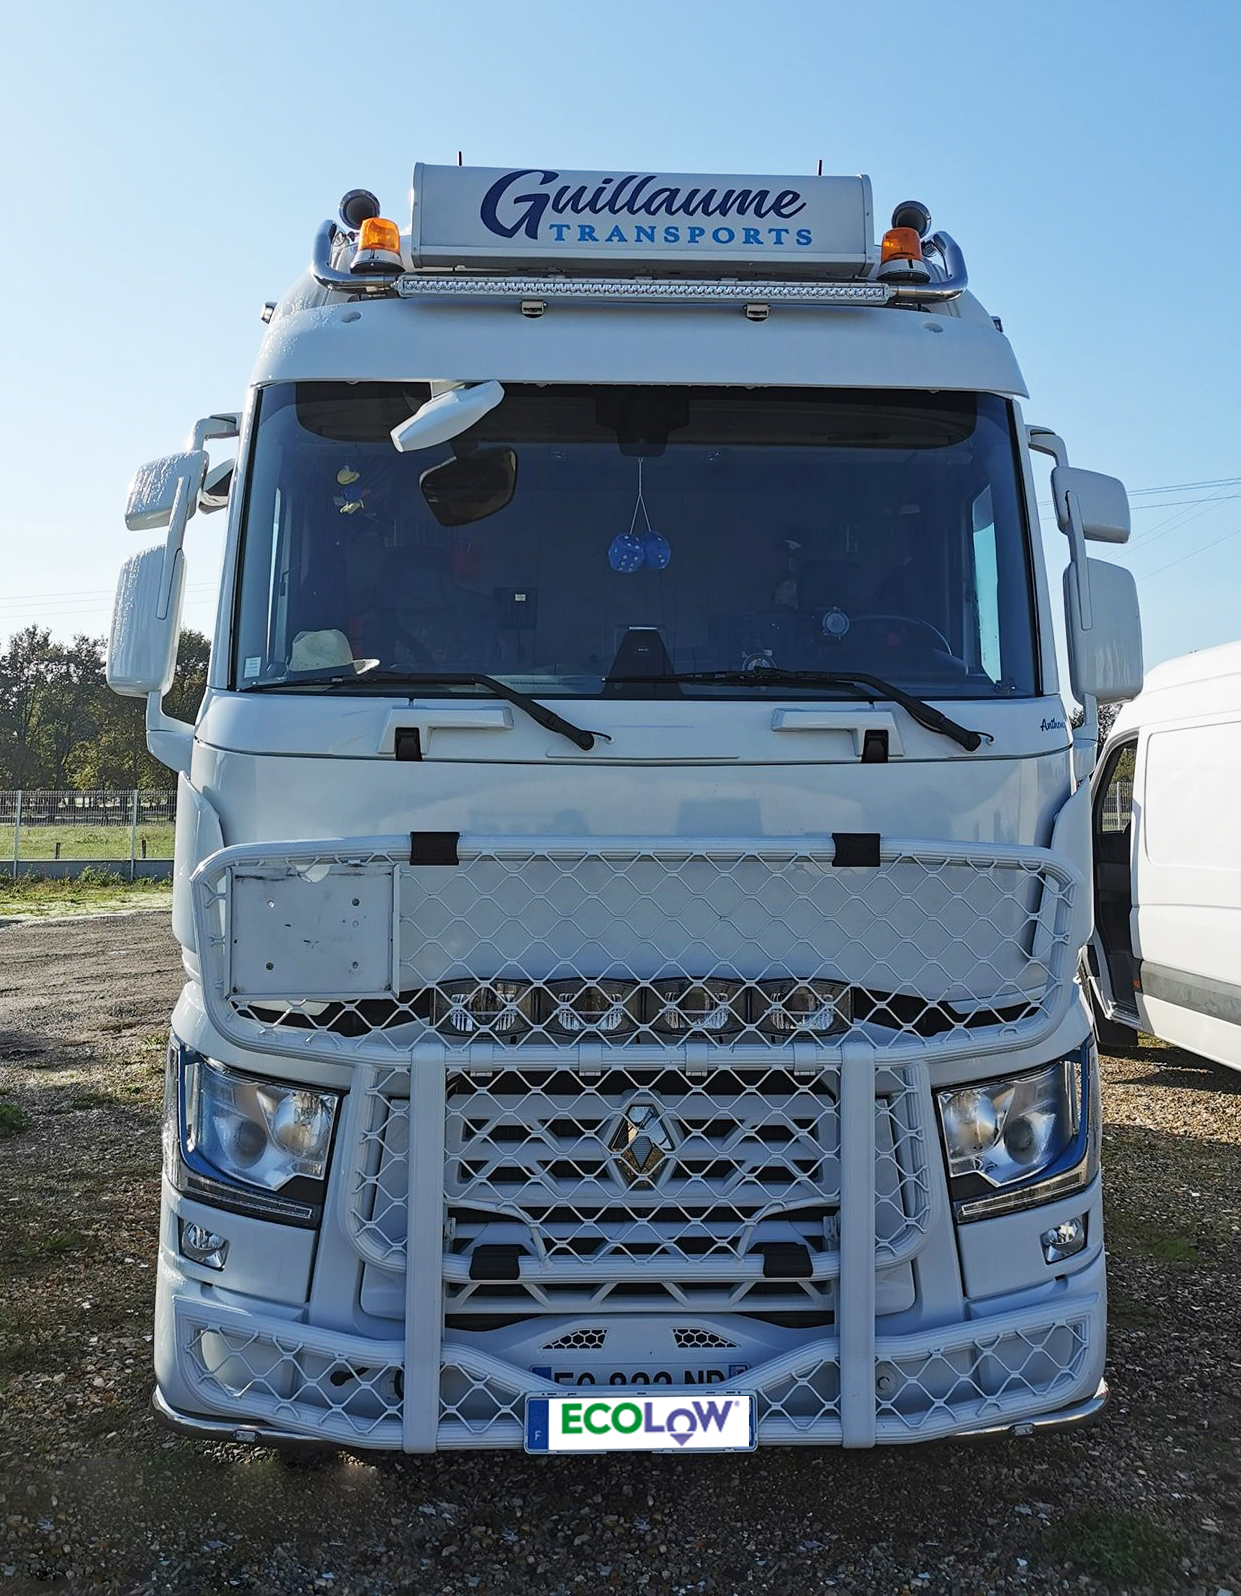 Transports GUILLAUME